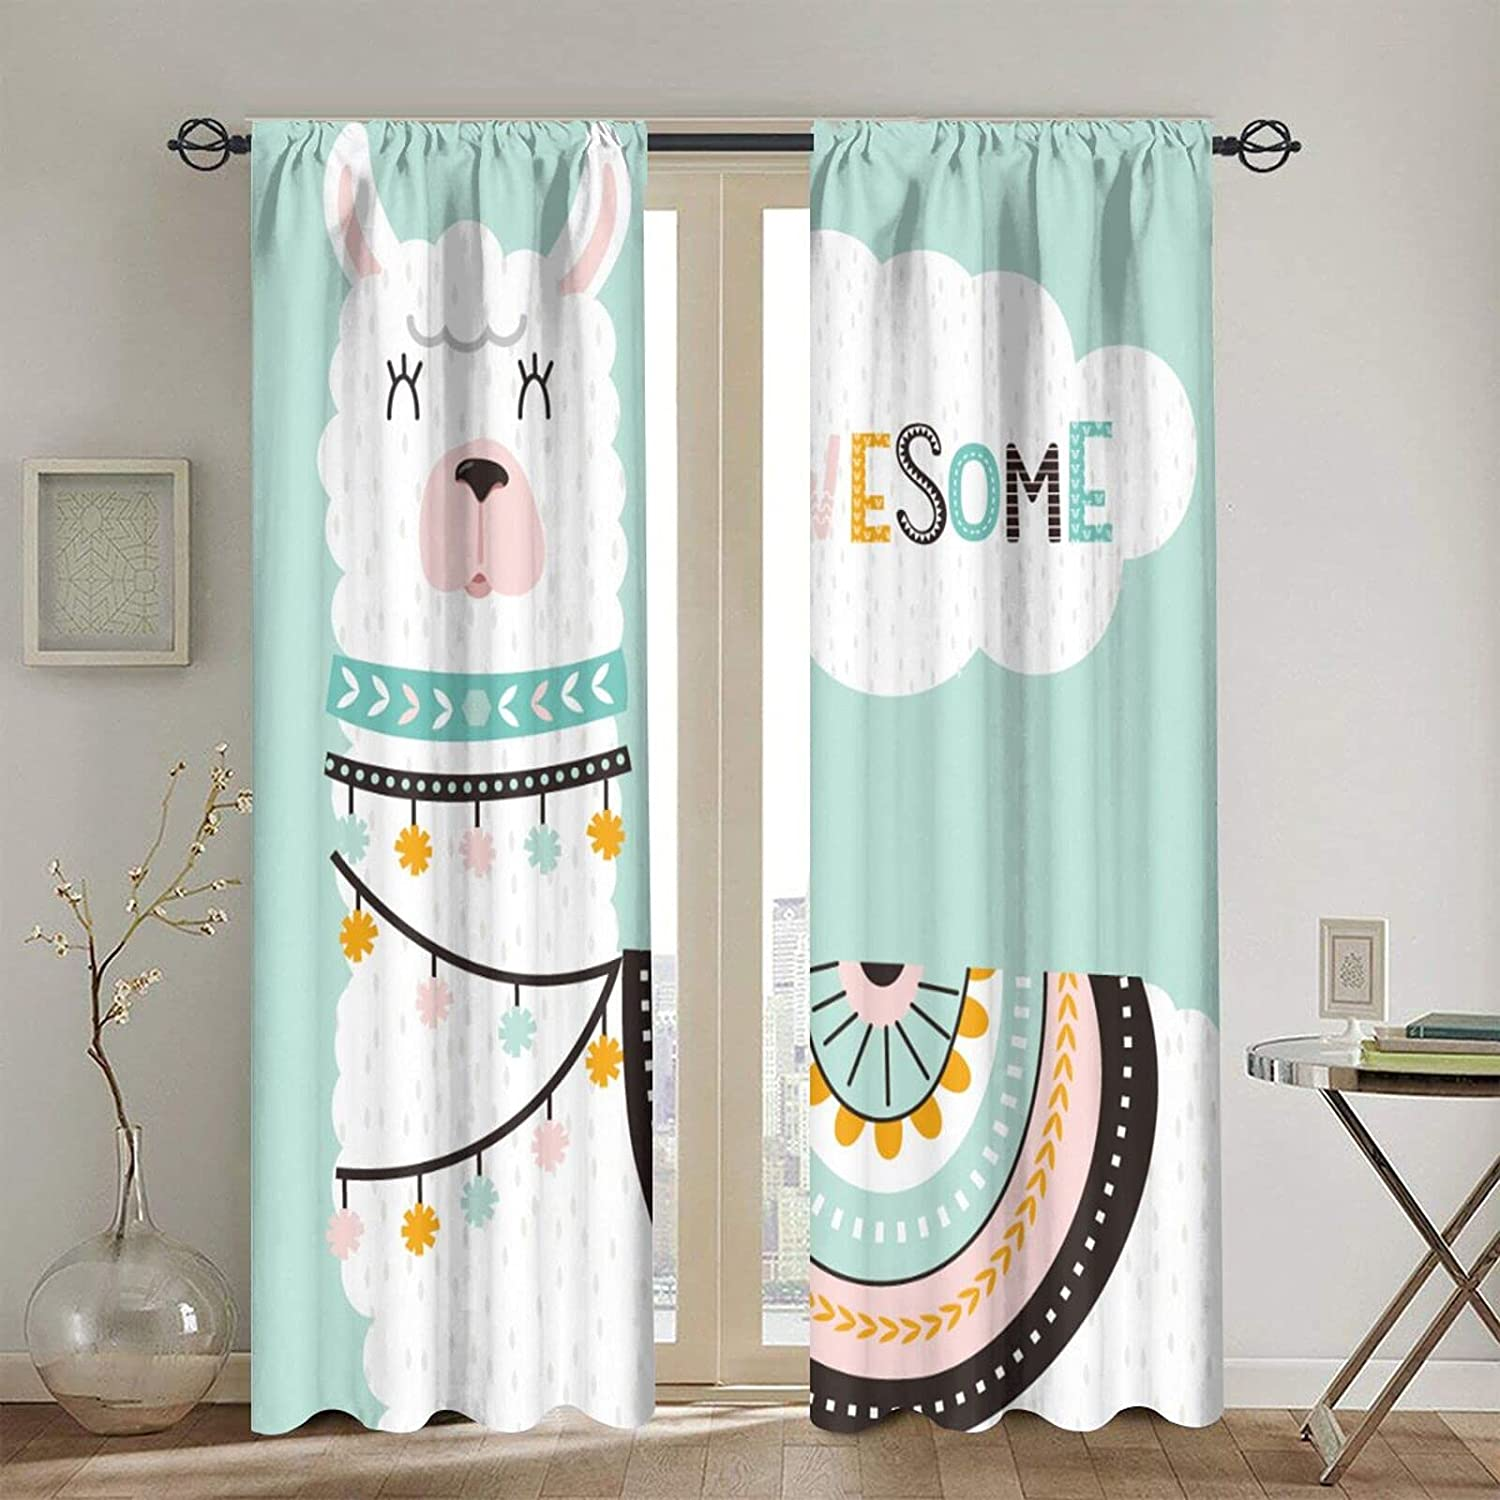 Rod Pocket Blackout Curtains Direct stock discount Thermal Window Curtain Cu Selling and selling Insulated